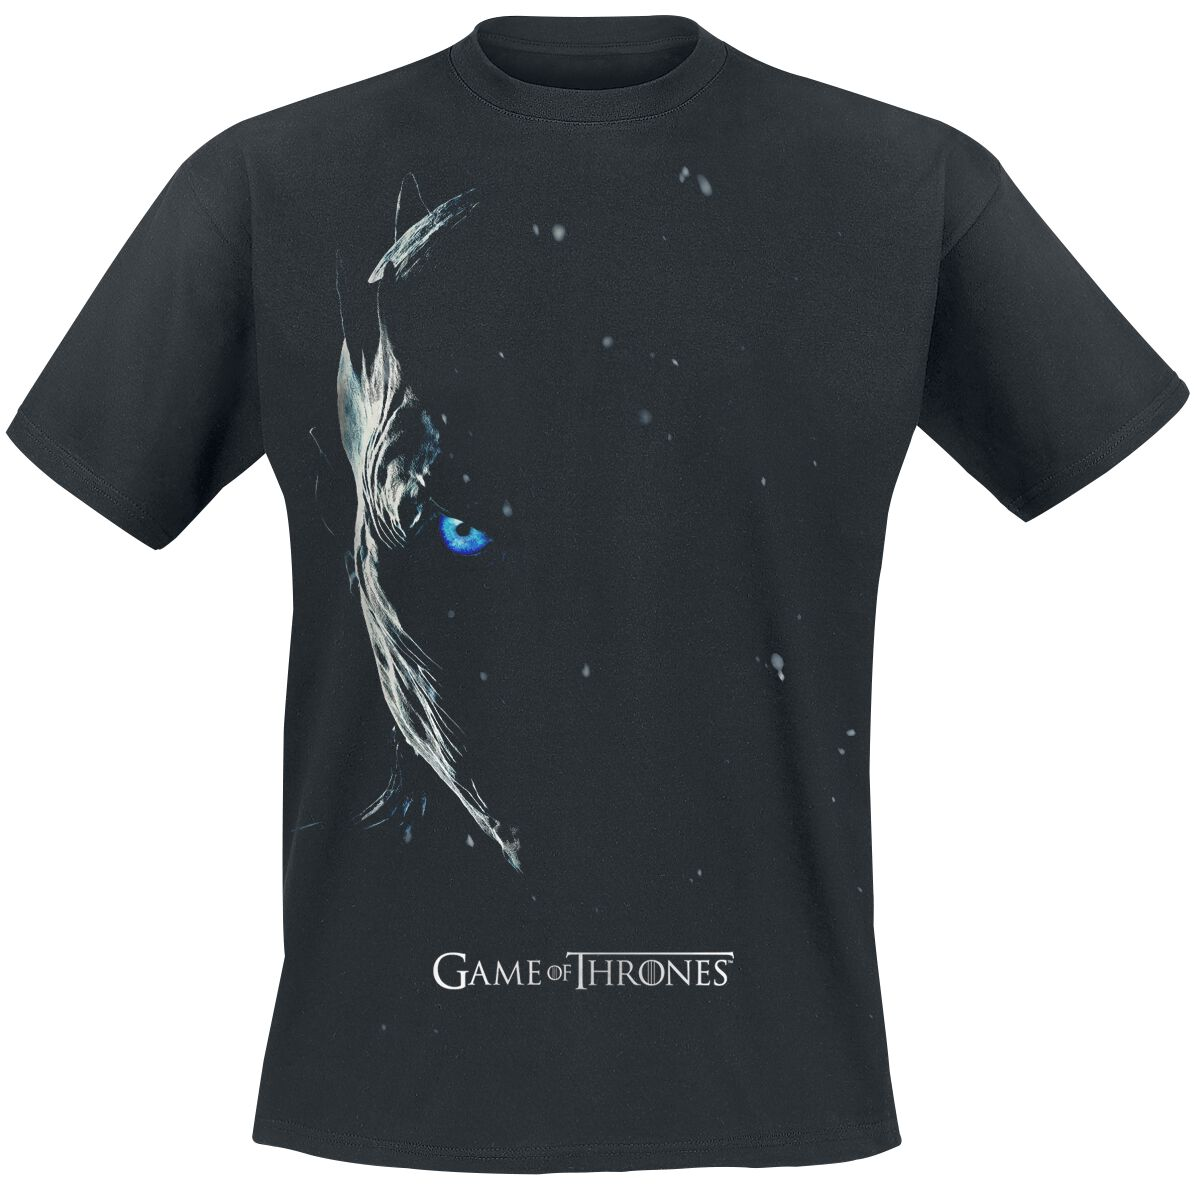 game of thrones season 7 poster nachtk nig t shirt schwarz ebay. Black Bedroom Furniture Sets. Home Design Ideas